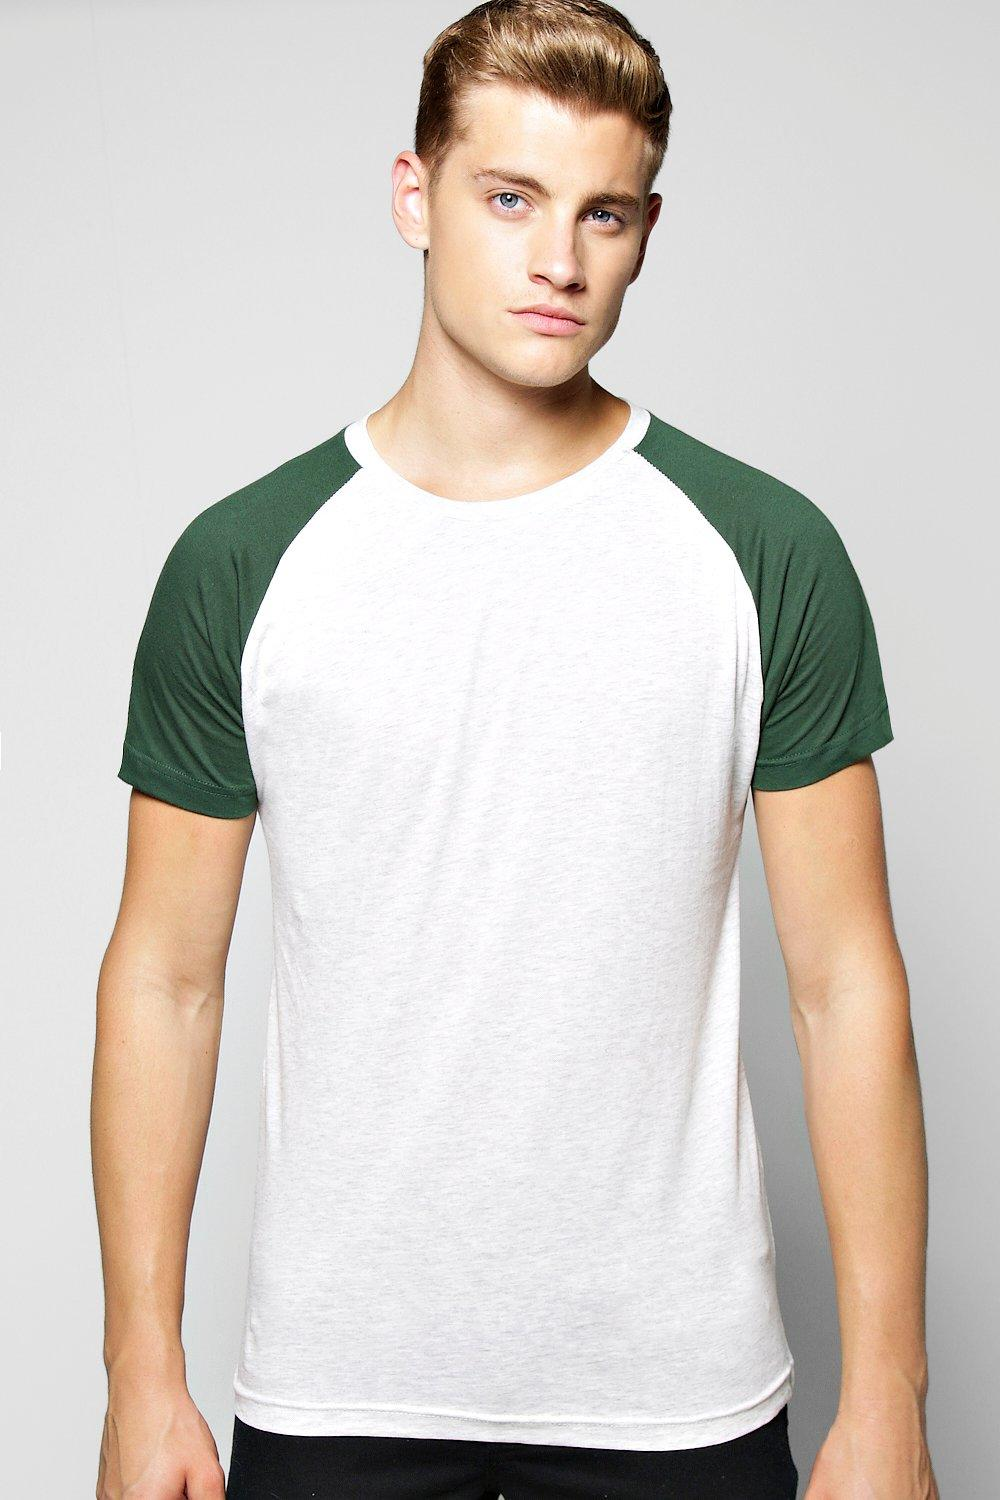 Raglan Sleeve T Shirt